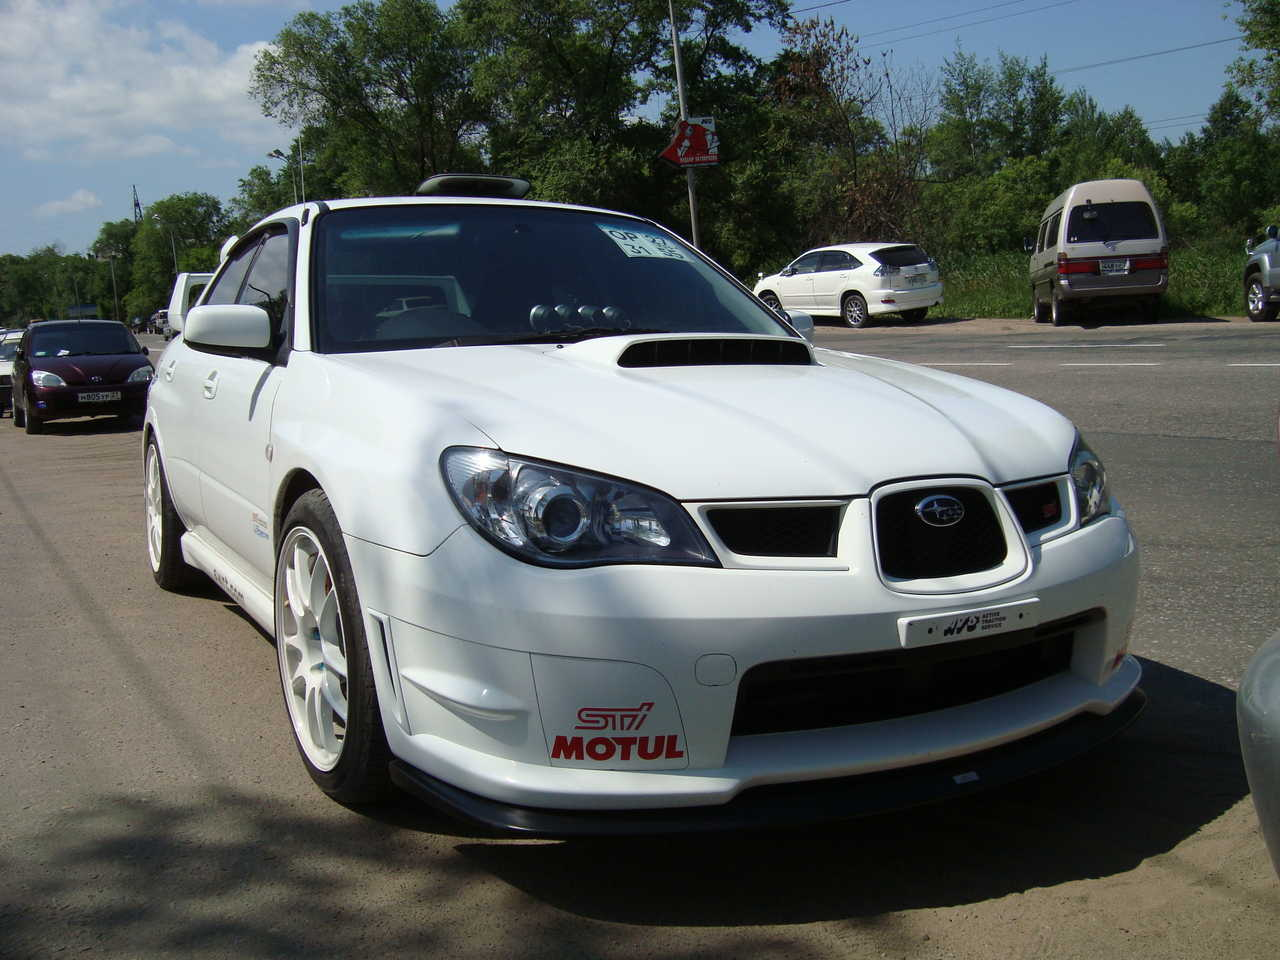 2006 subaru impreza wrx sti pictures 2000cc gasoline automatic for sale. Black Bedroom Furniture Sets. Home Design Ideas